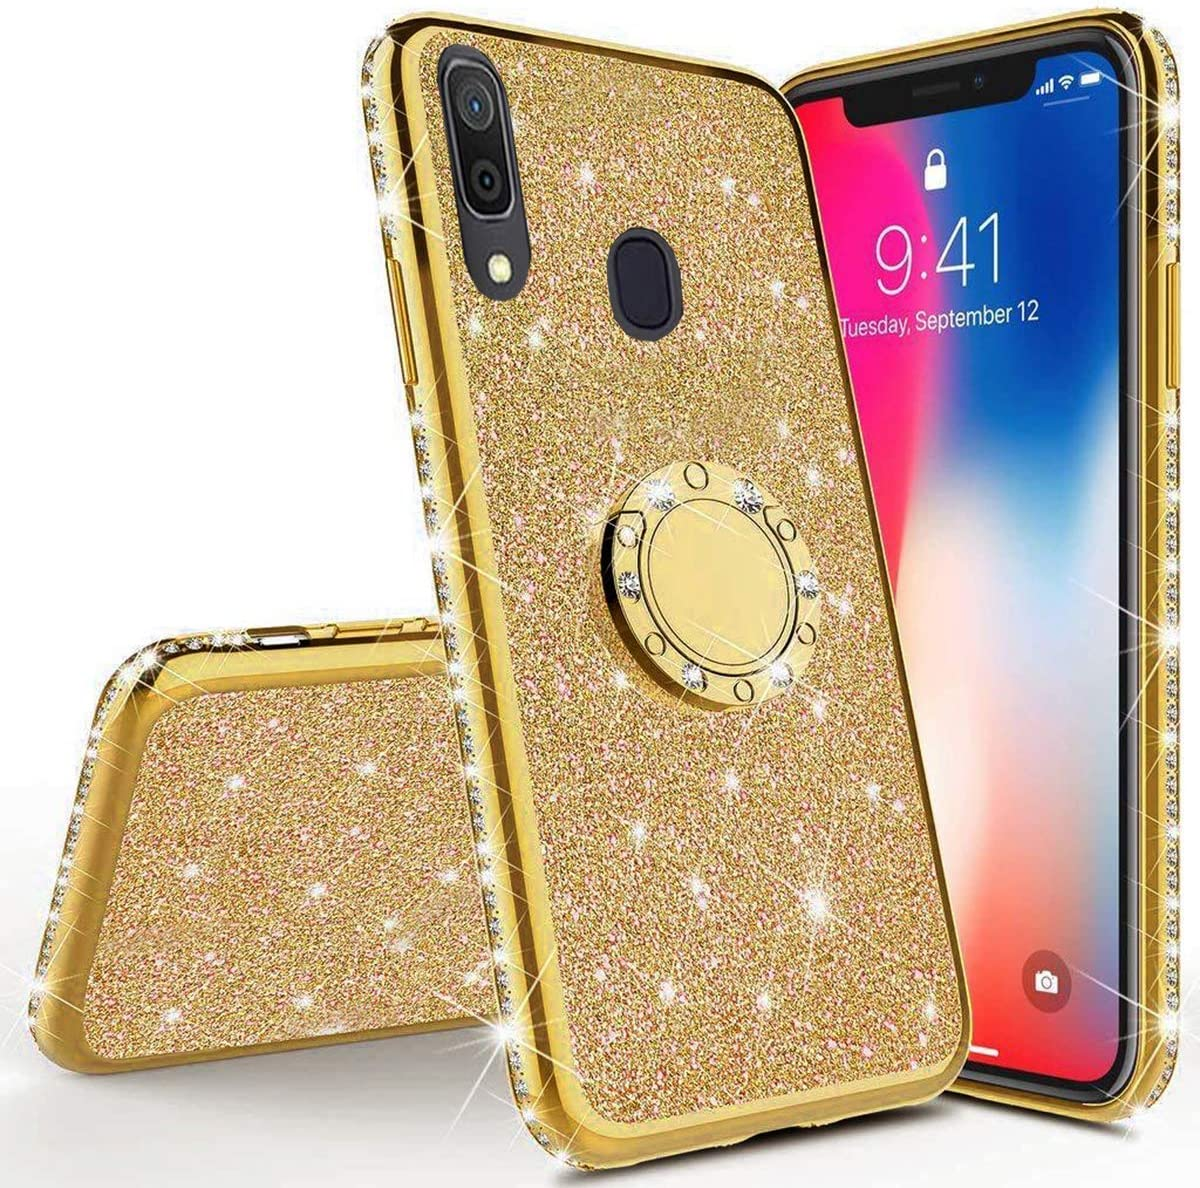 Herbests Compatible with Samsung Galaxy A30 Glitter Case Sparkly Bling Rhinestone Diamond Soft TPU Crystal Clear Flexible Protective Cover with Finger Ring Grip Holder Stand,Gold